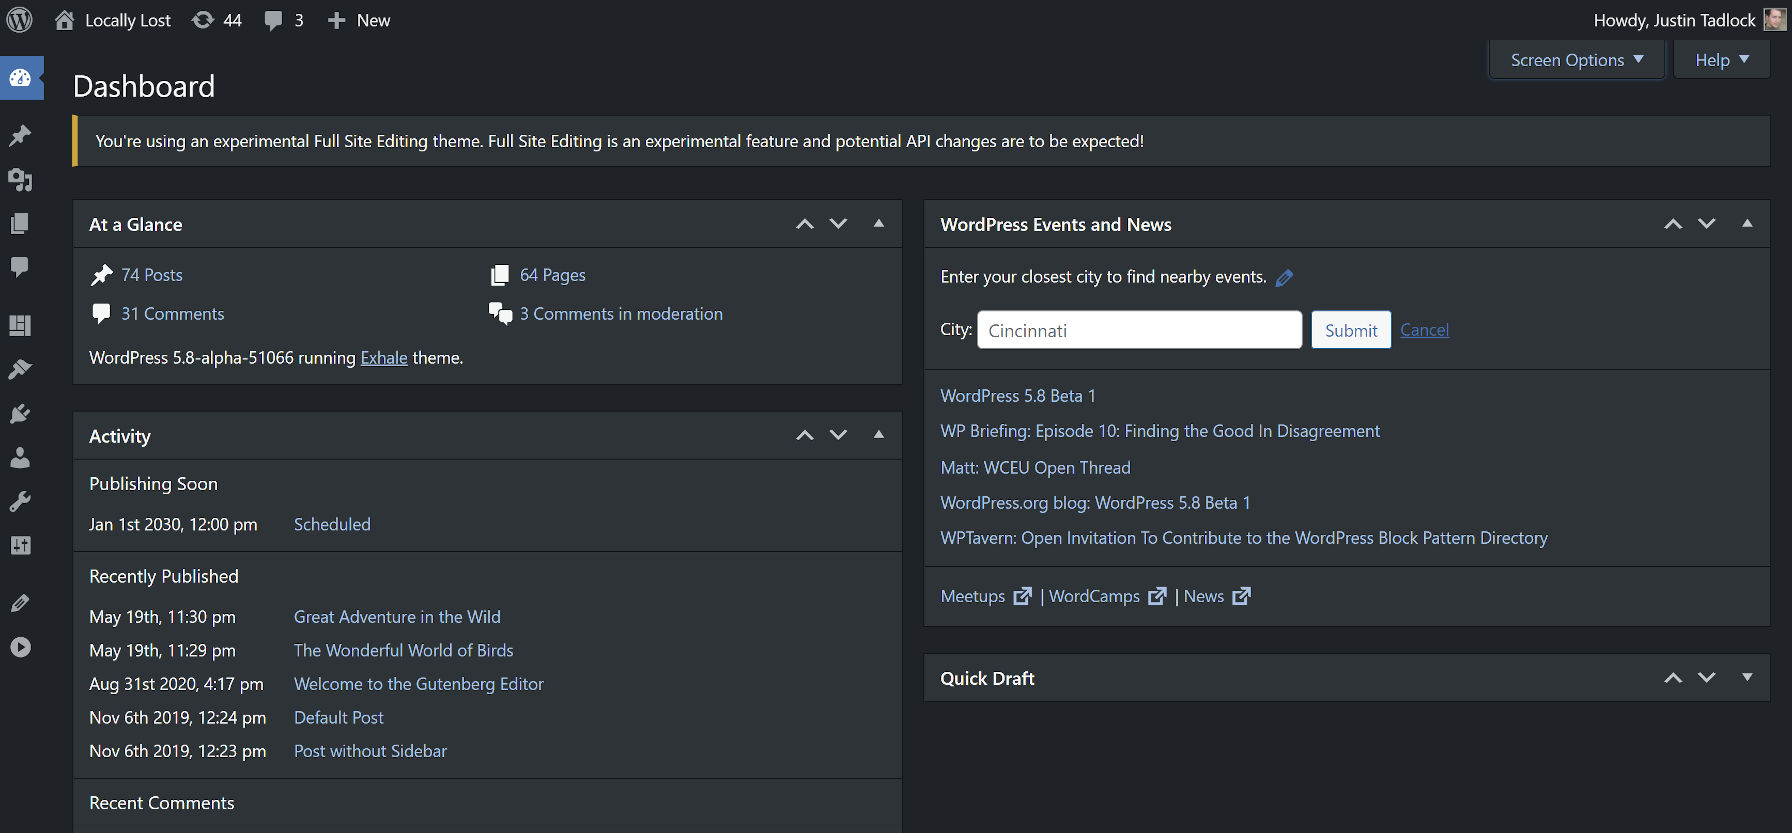 Viewing the WordPress dashboard with dark mode enabled.